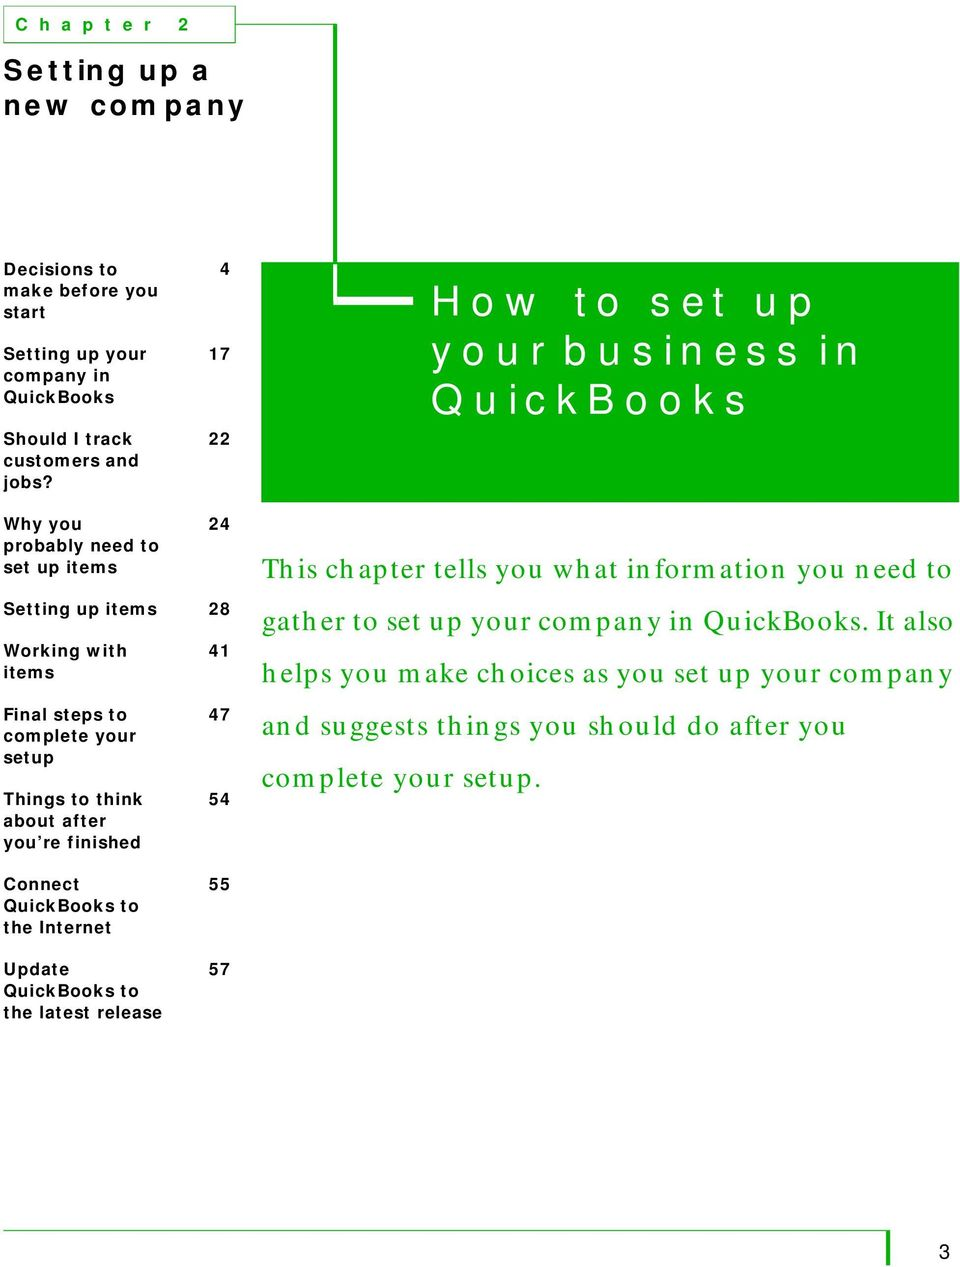 Things to think about after you re finished 41 47 54 This chapter tells you what information you need to gather to set up your company in QuickBooks.